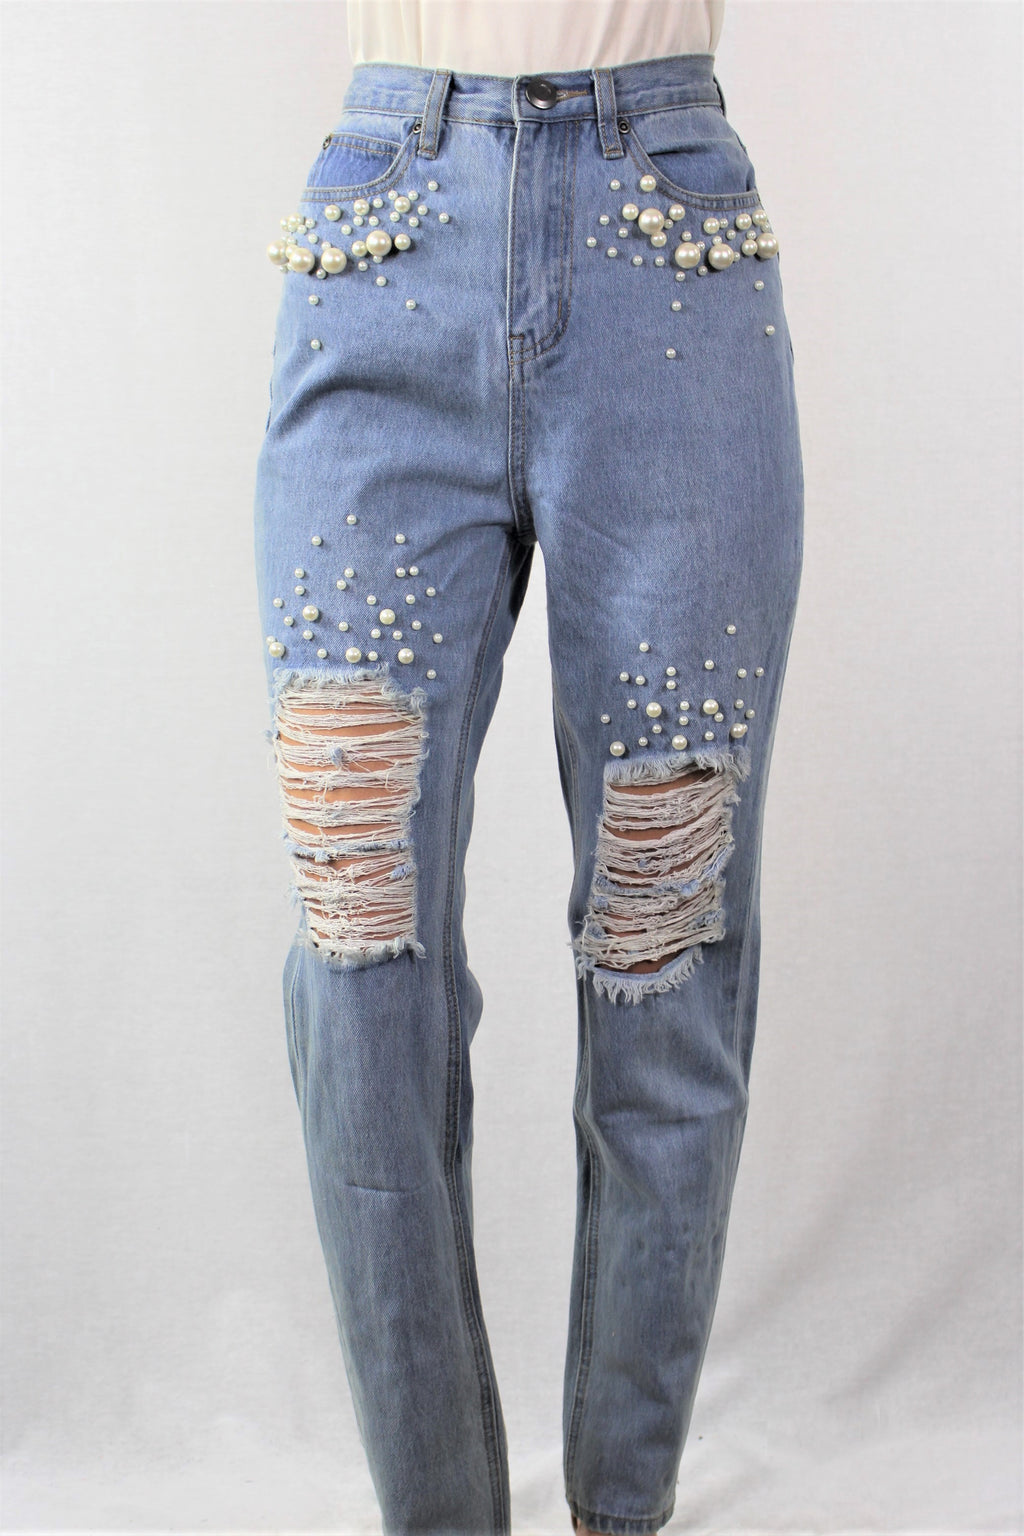 Women's High Waist Ripped Jeans0 with Pearl Detail